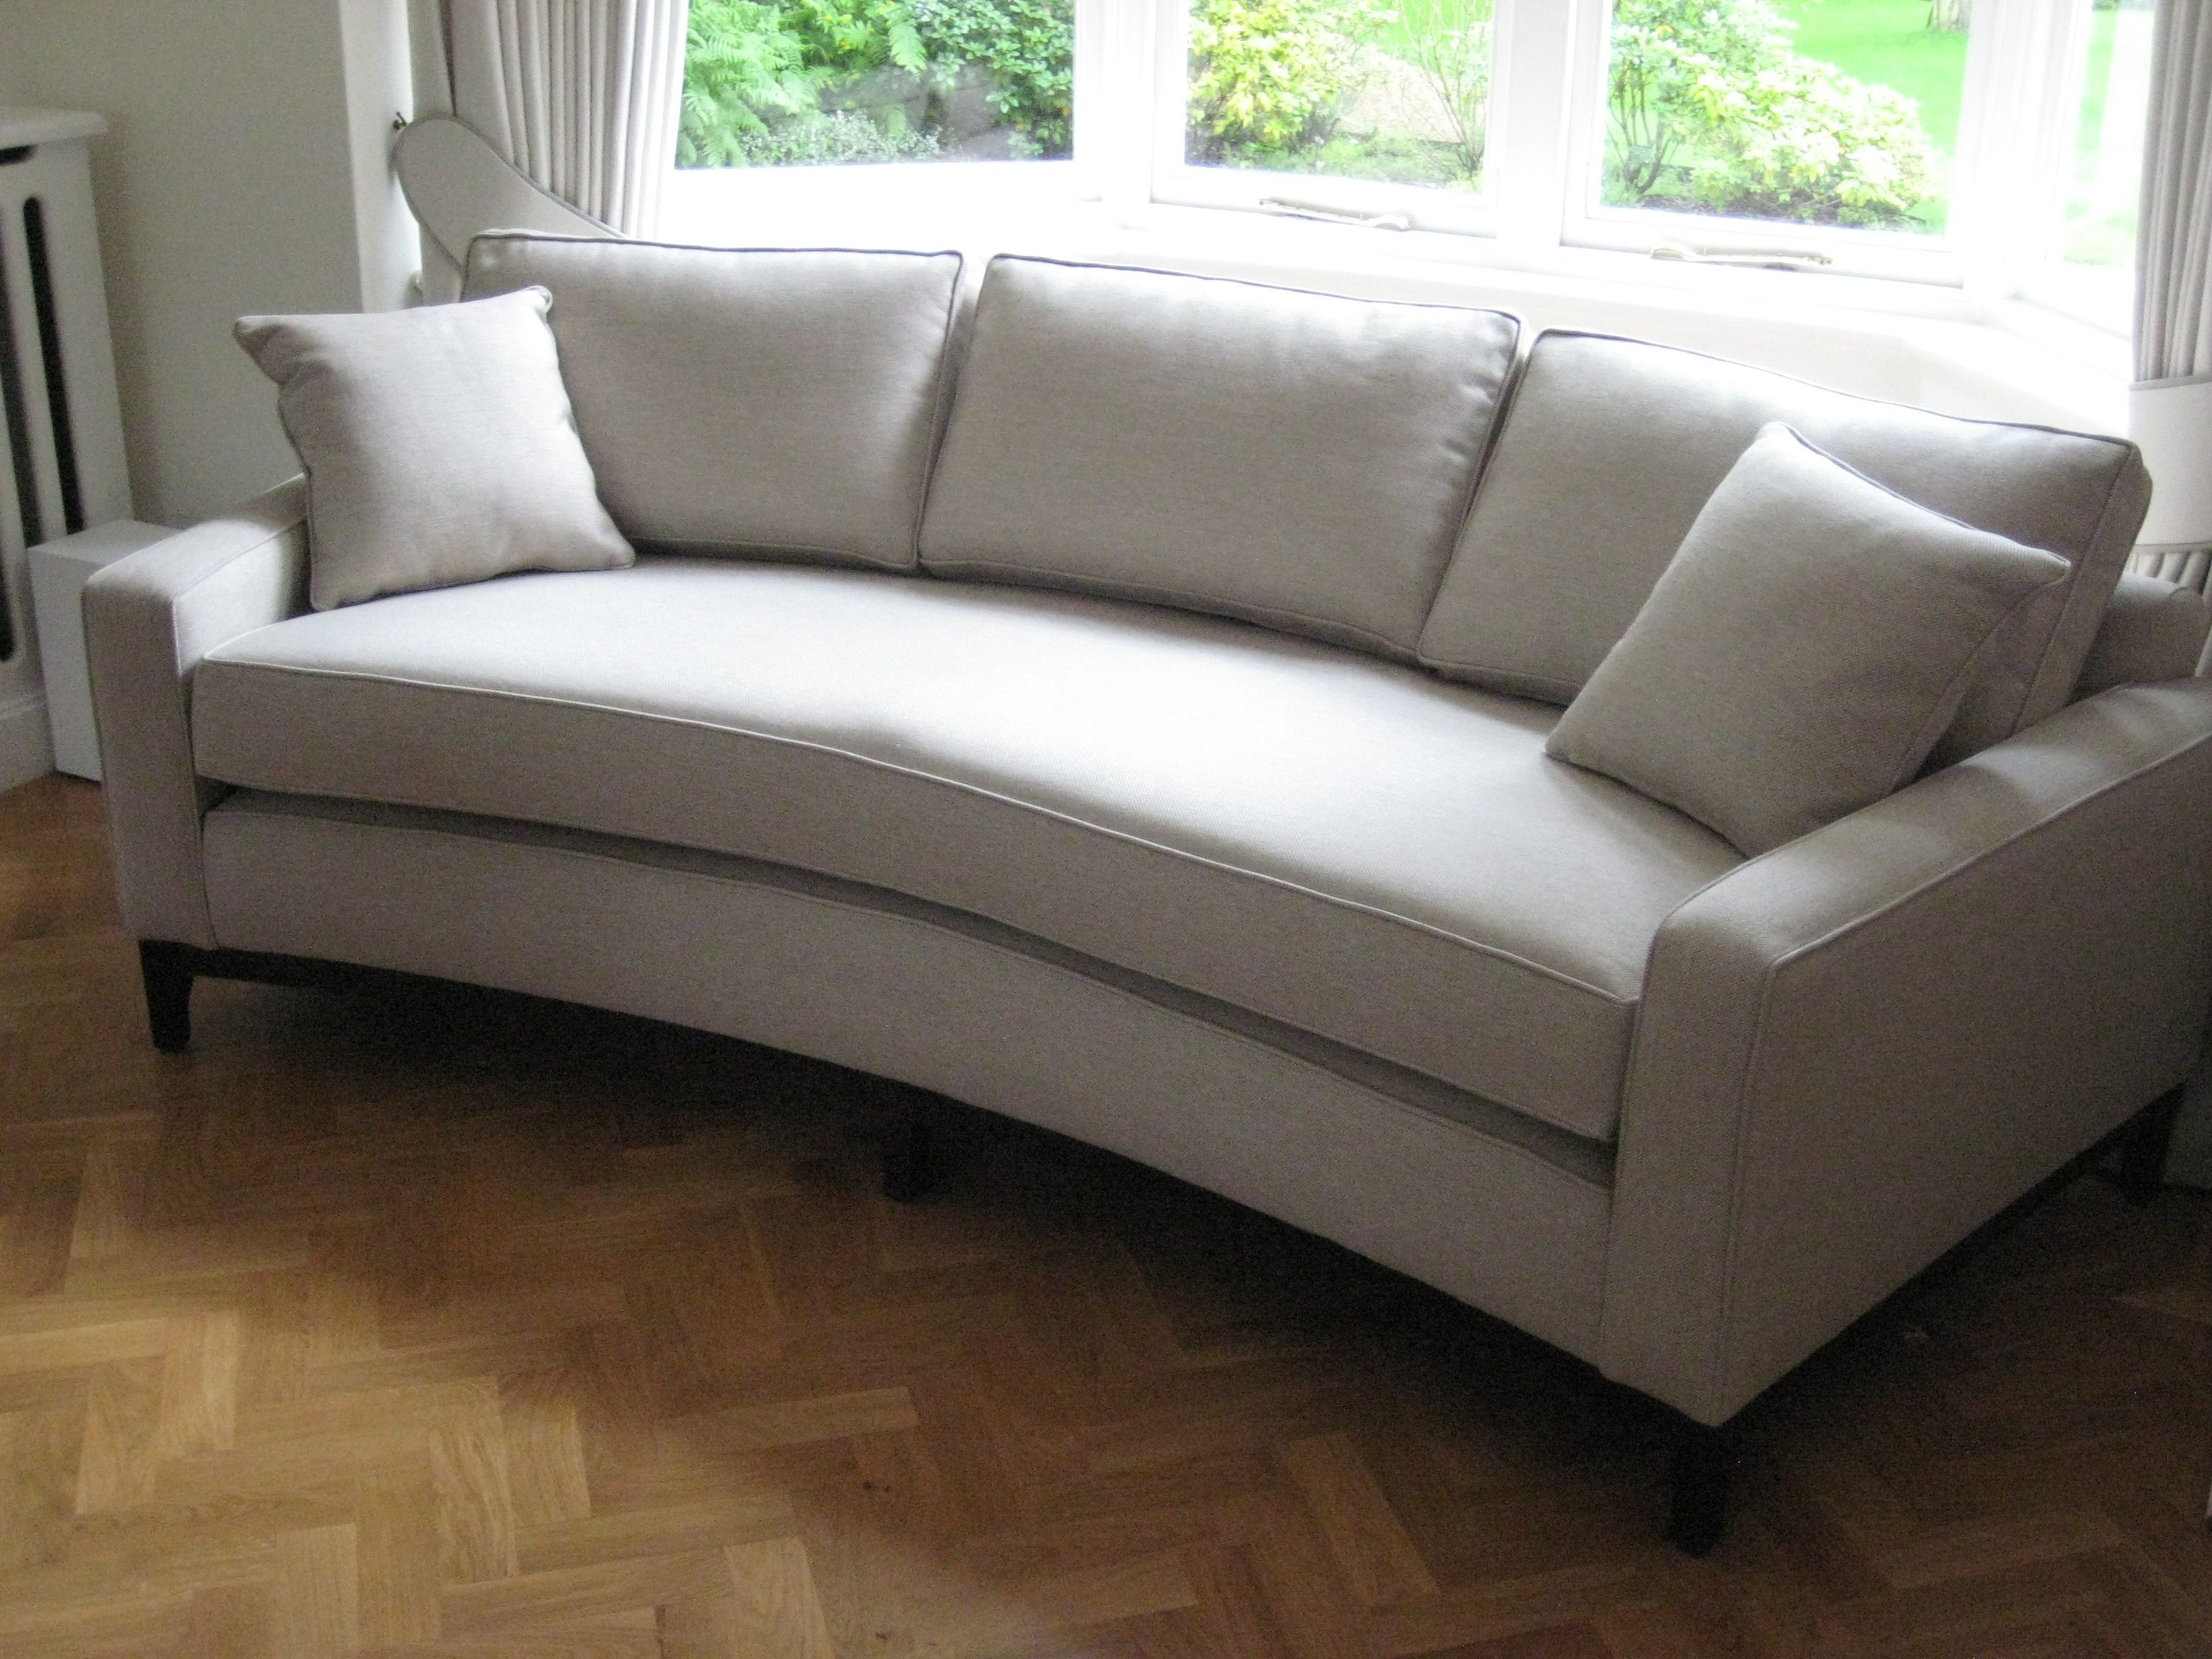 Bespoke Curved Sofa Perfect For A Bay Window This Has